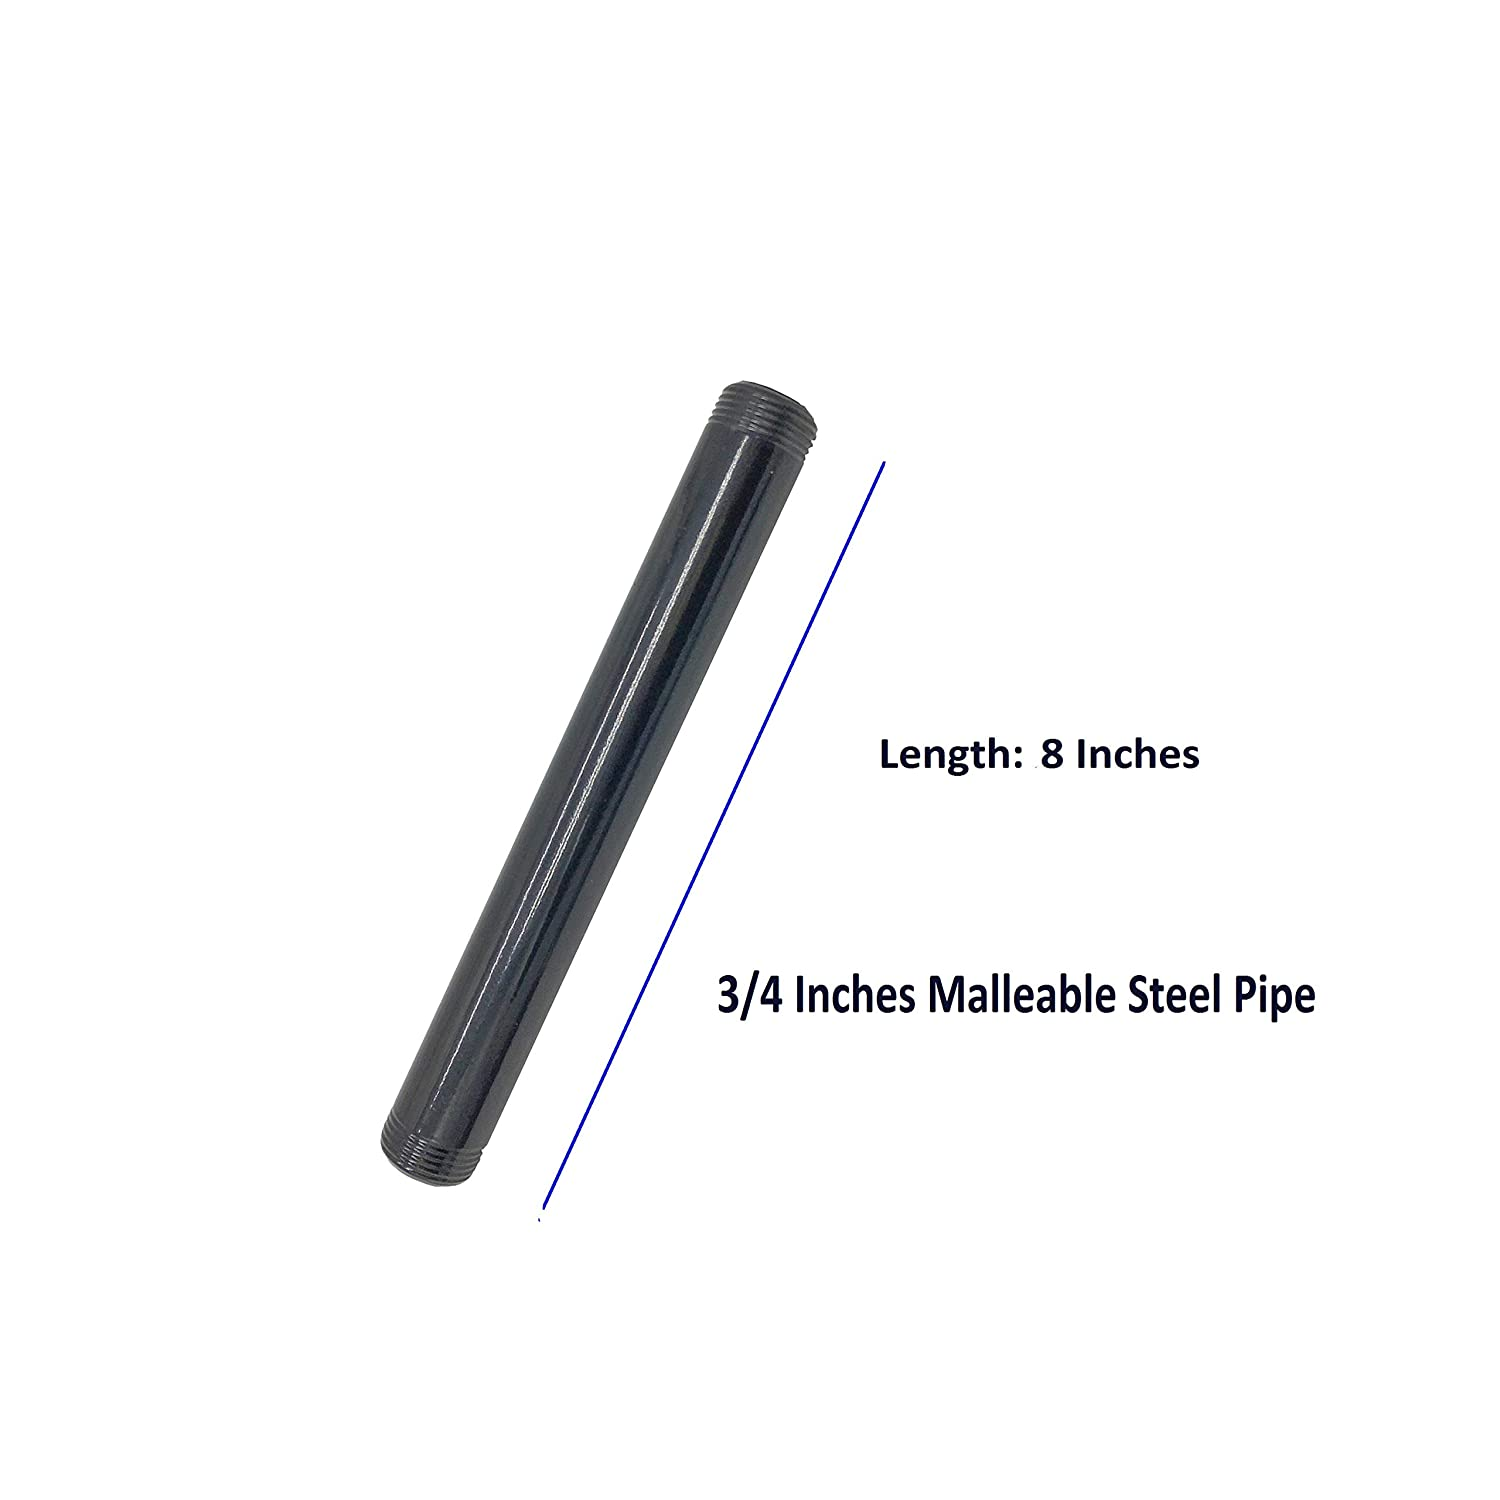 10 Packs Black Finish 3//4 Inches Black Pipe Threaded Pipe Nipples Malleable Steel Pipe Fitting Malleable Cast Iron Pipe Connector for DIY Shelving 16 Inches